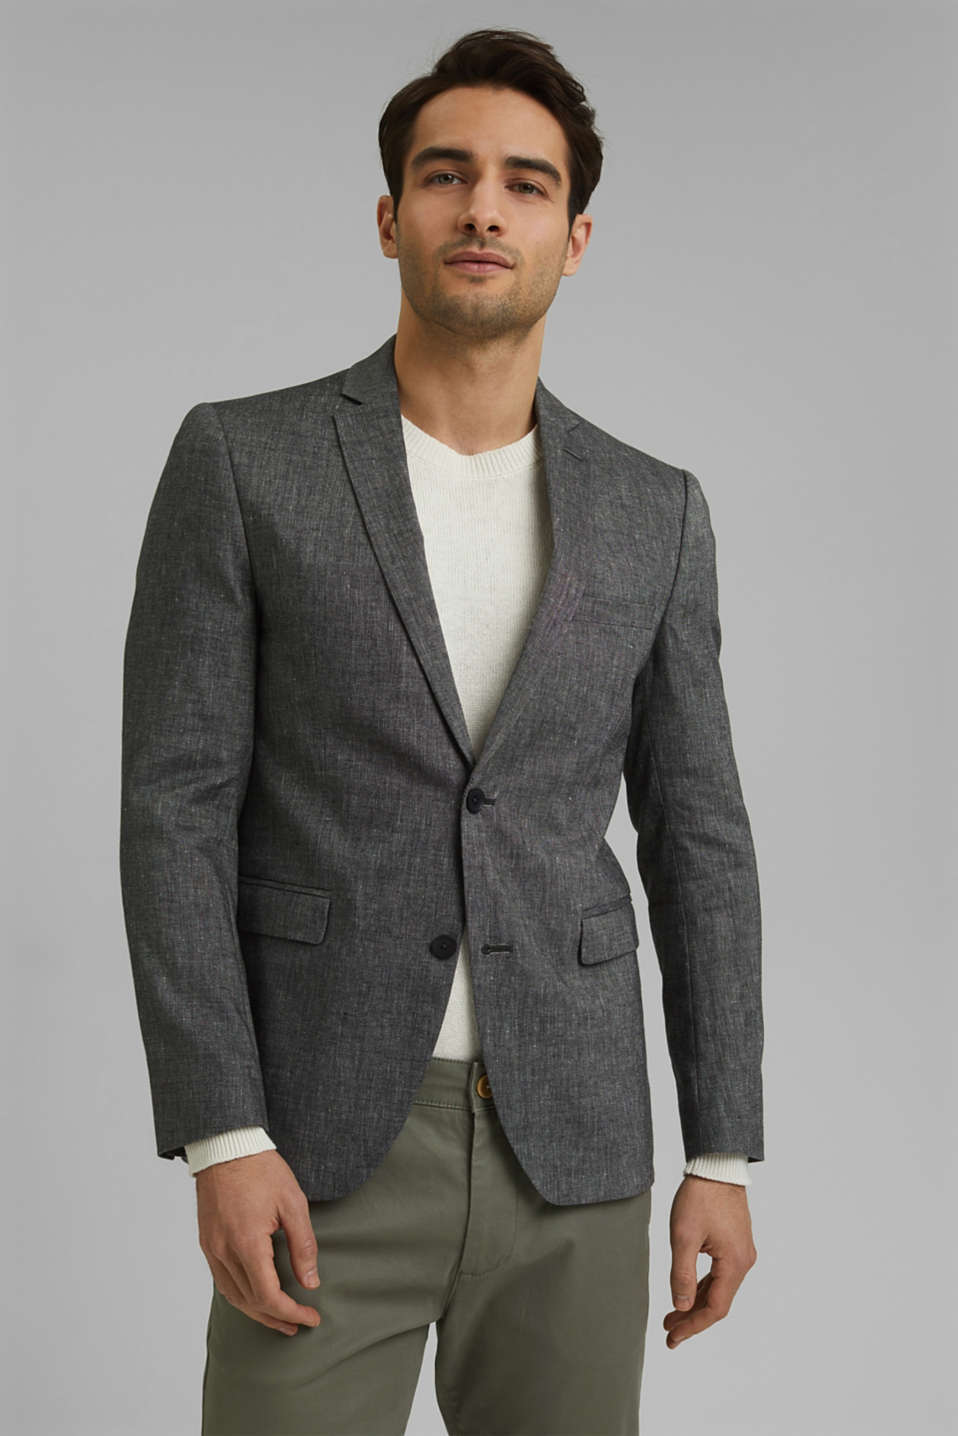 Esprit - Sports jacket with a fine texture made of an organic cotton/linen blend